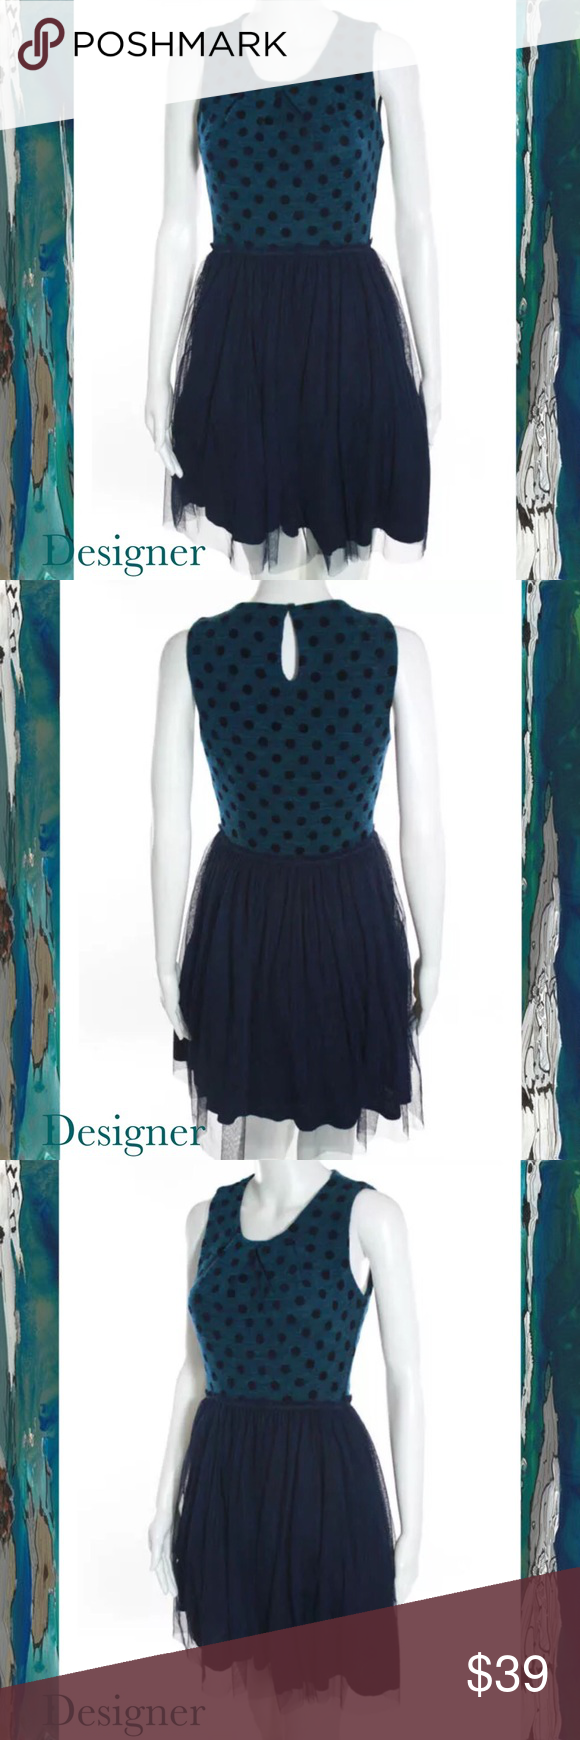 """DESIGNER Chic Navy/Teal PolkaDot Fit-N-Flare Dress SIZE XS. 35"""" Length. 24"""" Waist. 28"""" Bust. Sleeveless. Bold Teal Color Fitted Top w Navy Blue Polka Dots. Keyhole Back, Button Closure. Navy Blue Flare Skirt w Sheer Mesh Overlay. EUC Designer Dresses Midi"""